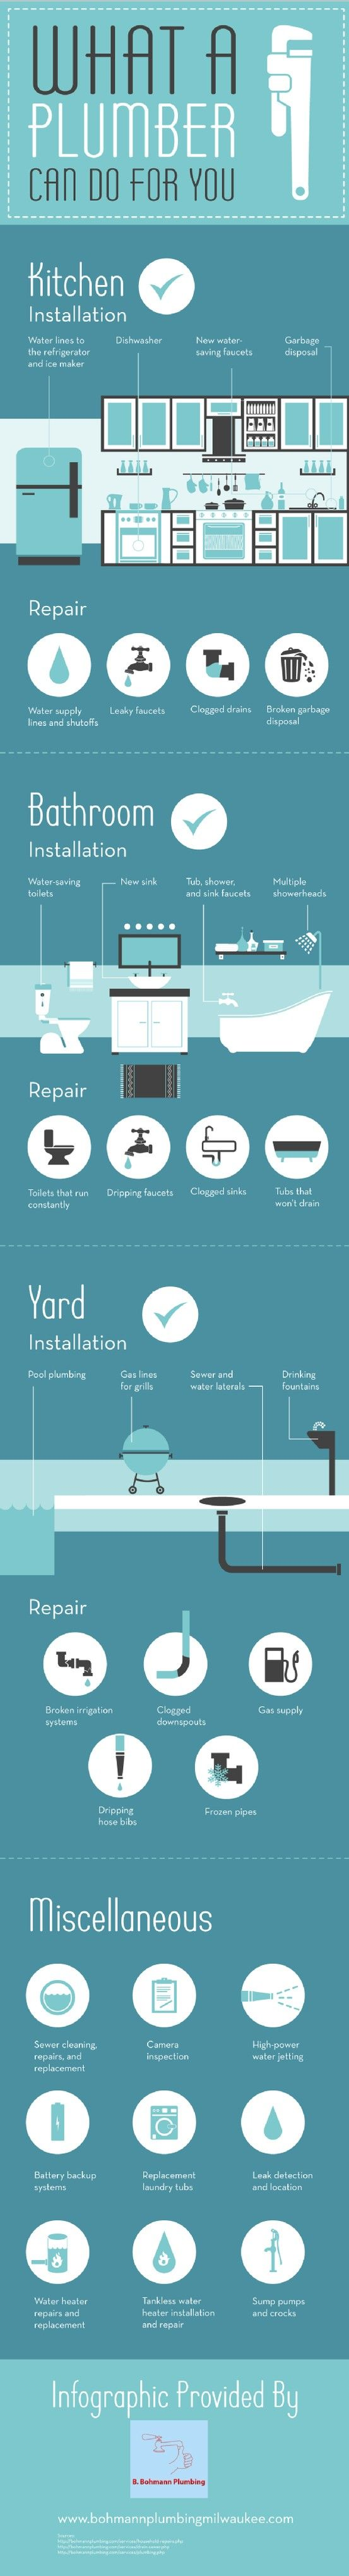 What can plumbers do? They can fix leaky faucets, clogged drains, and so much more! This infographic from a 24-hour plumber shows you all of the services a plumbing company has to offer.